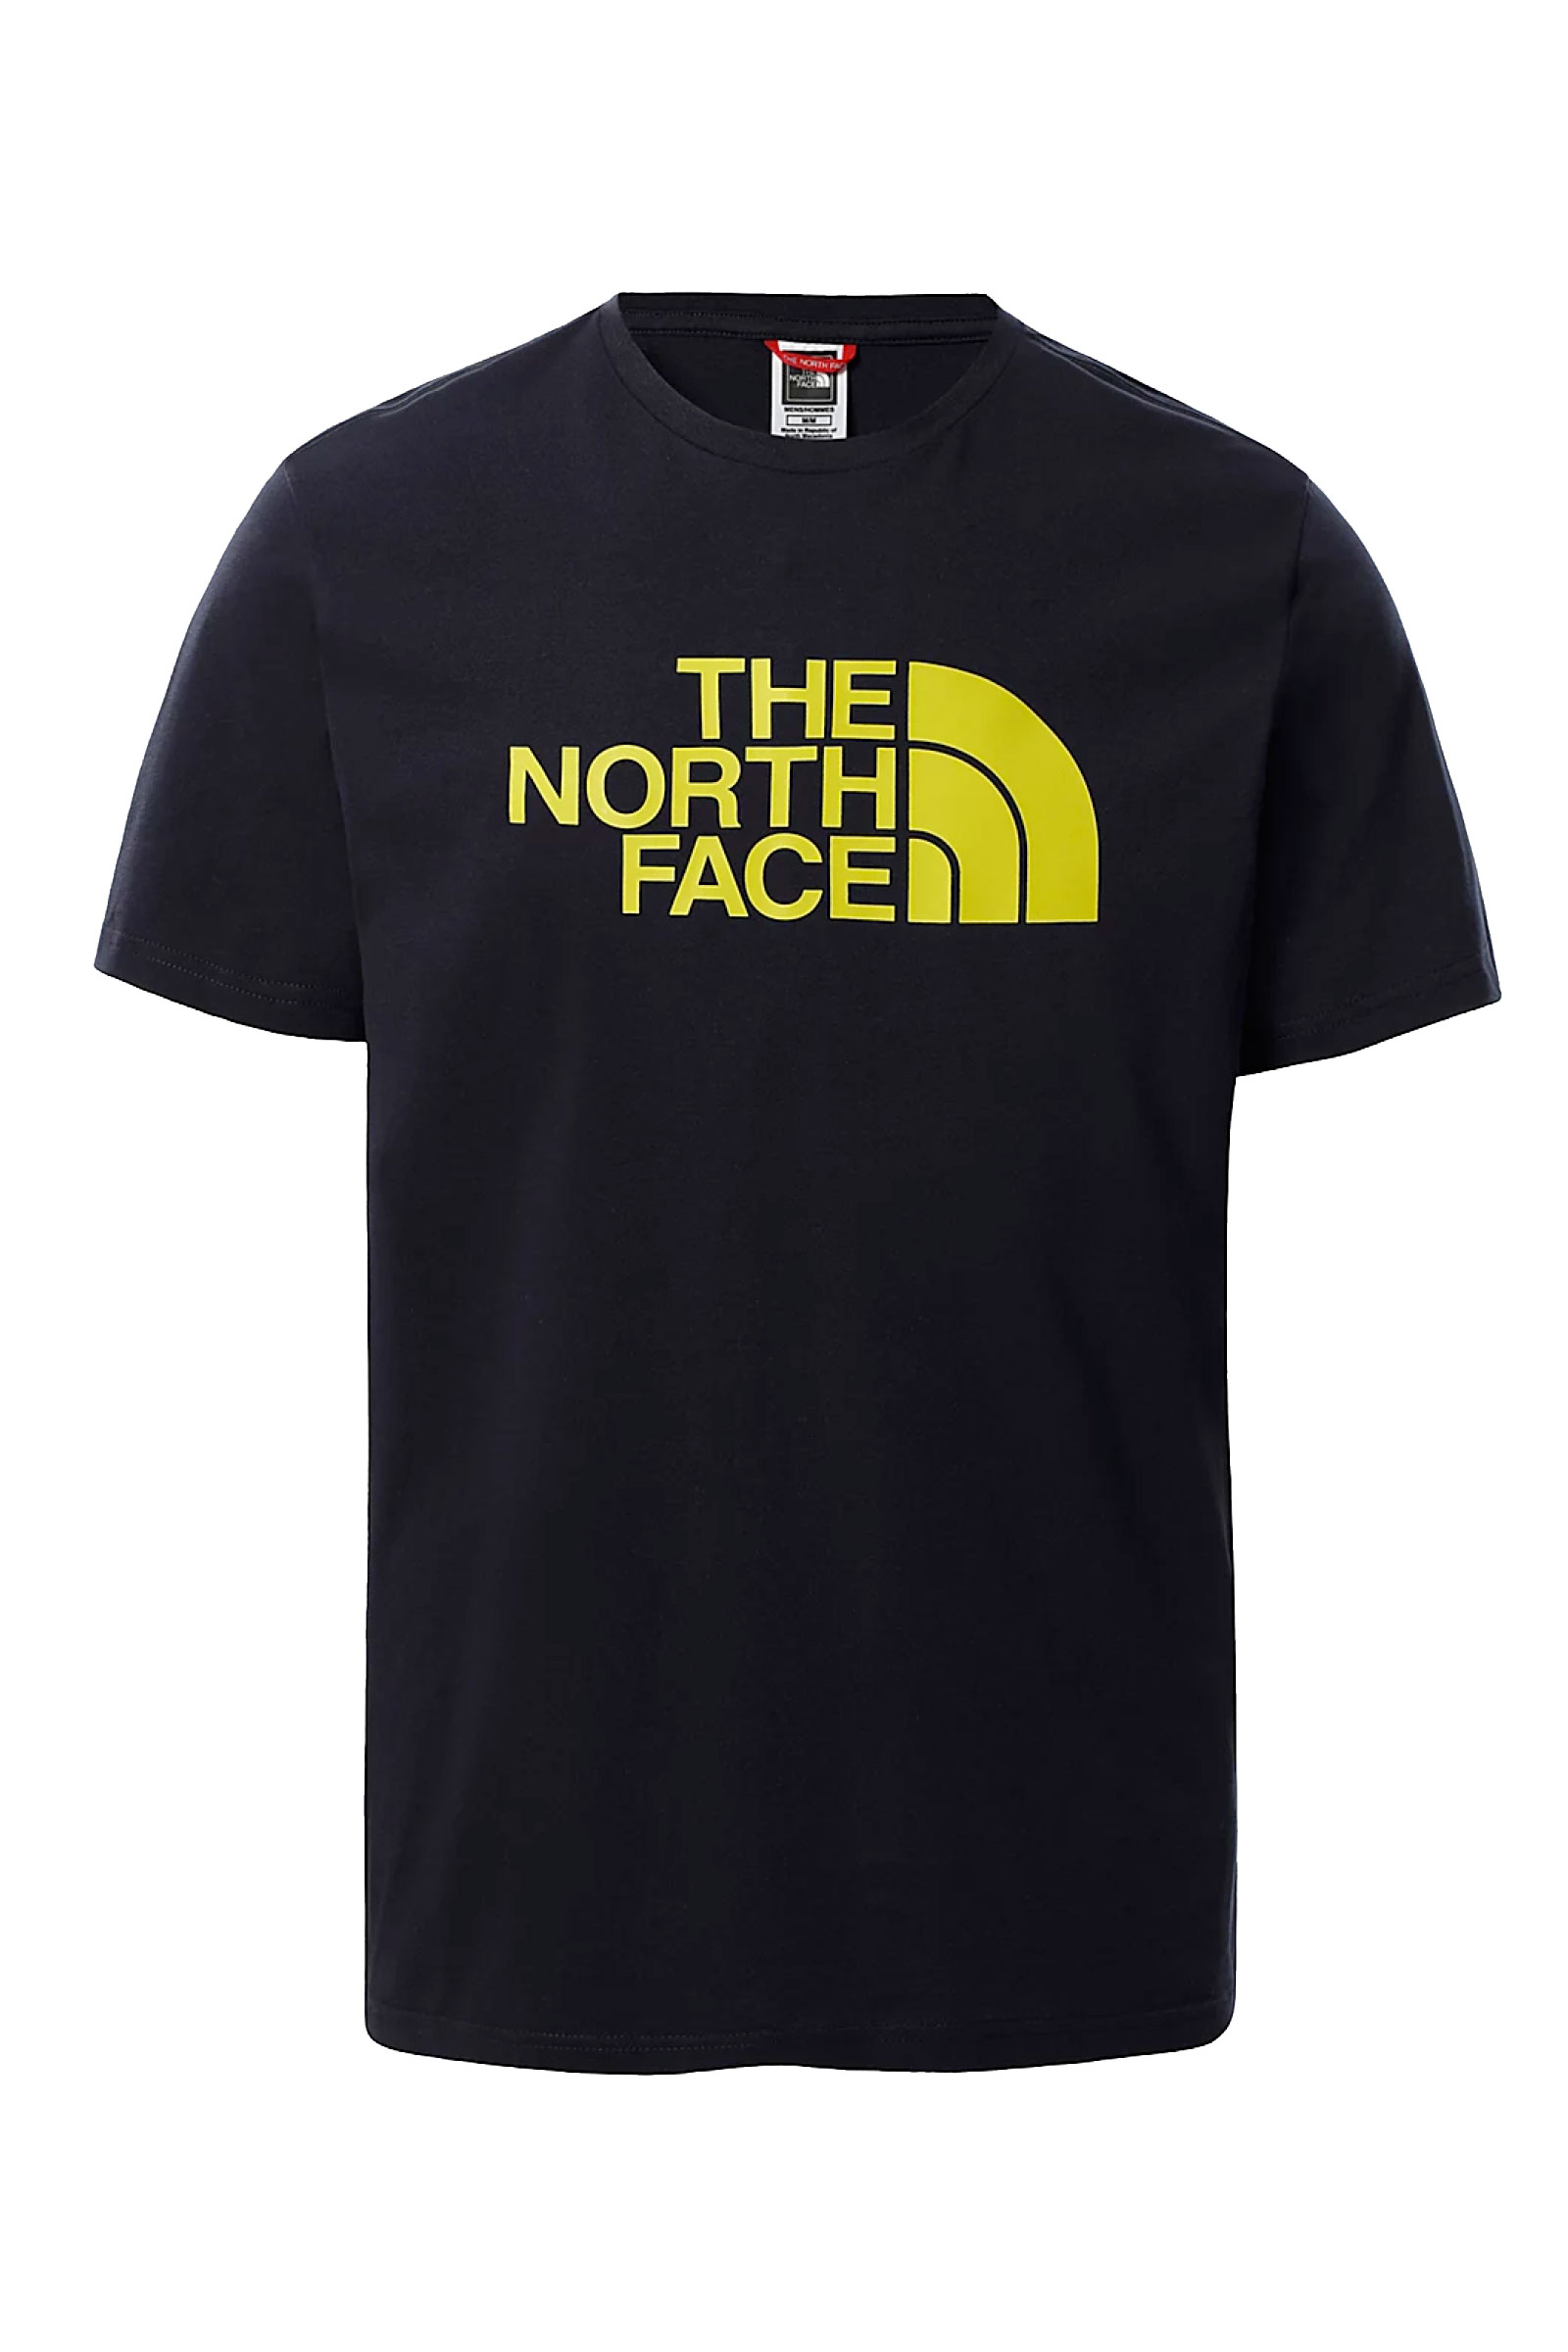 THE NORTH FACE   T-Shirt   NF0A2TX3XE31